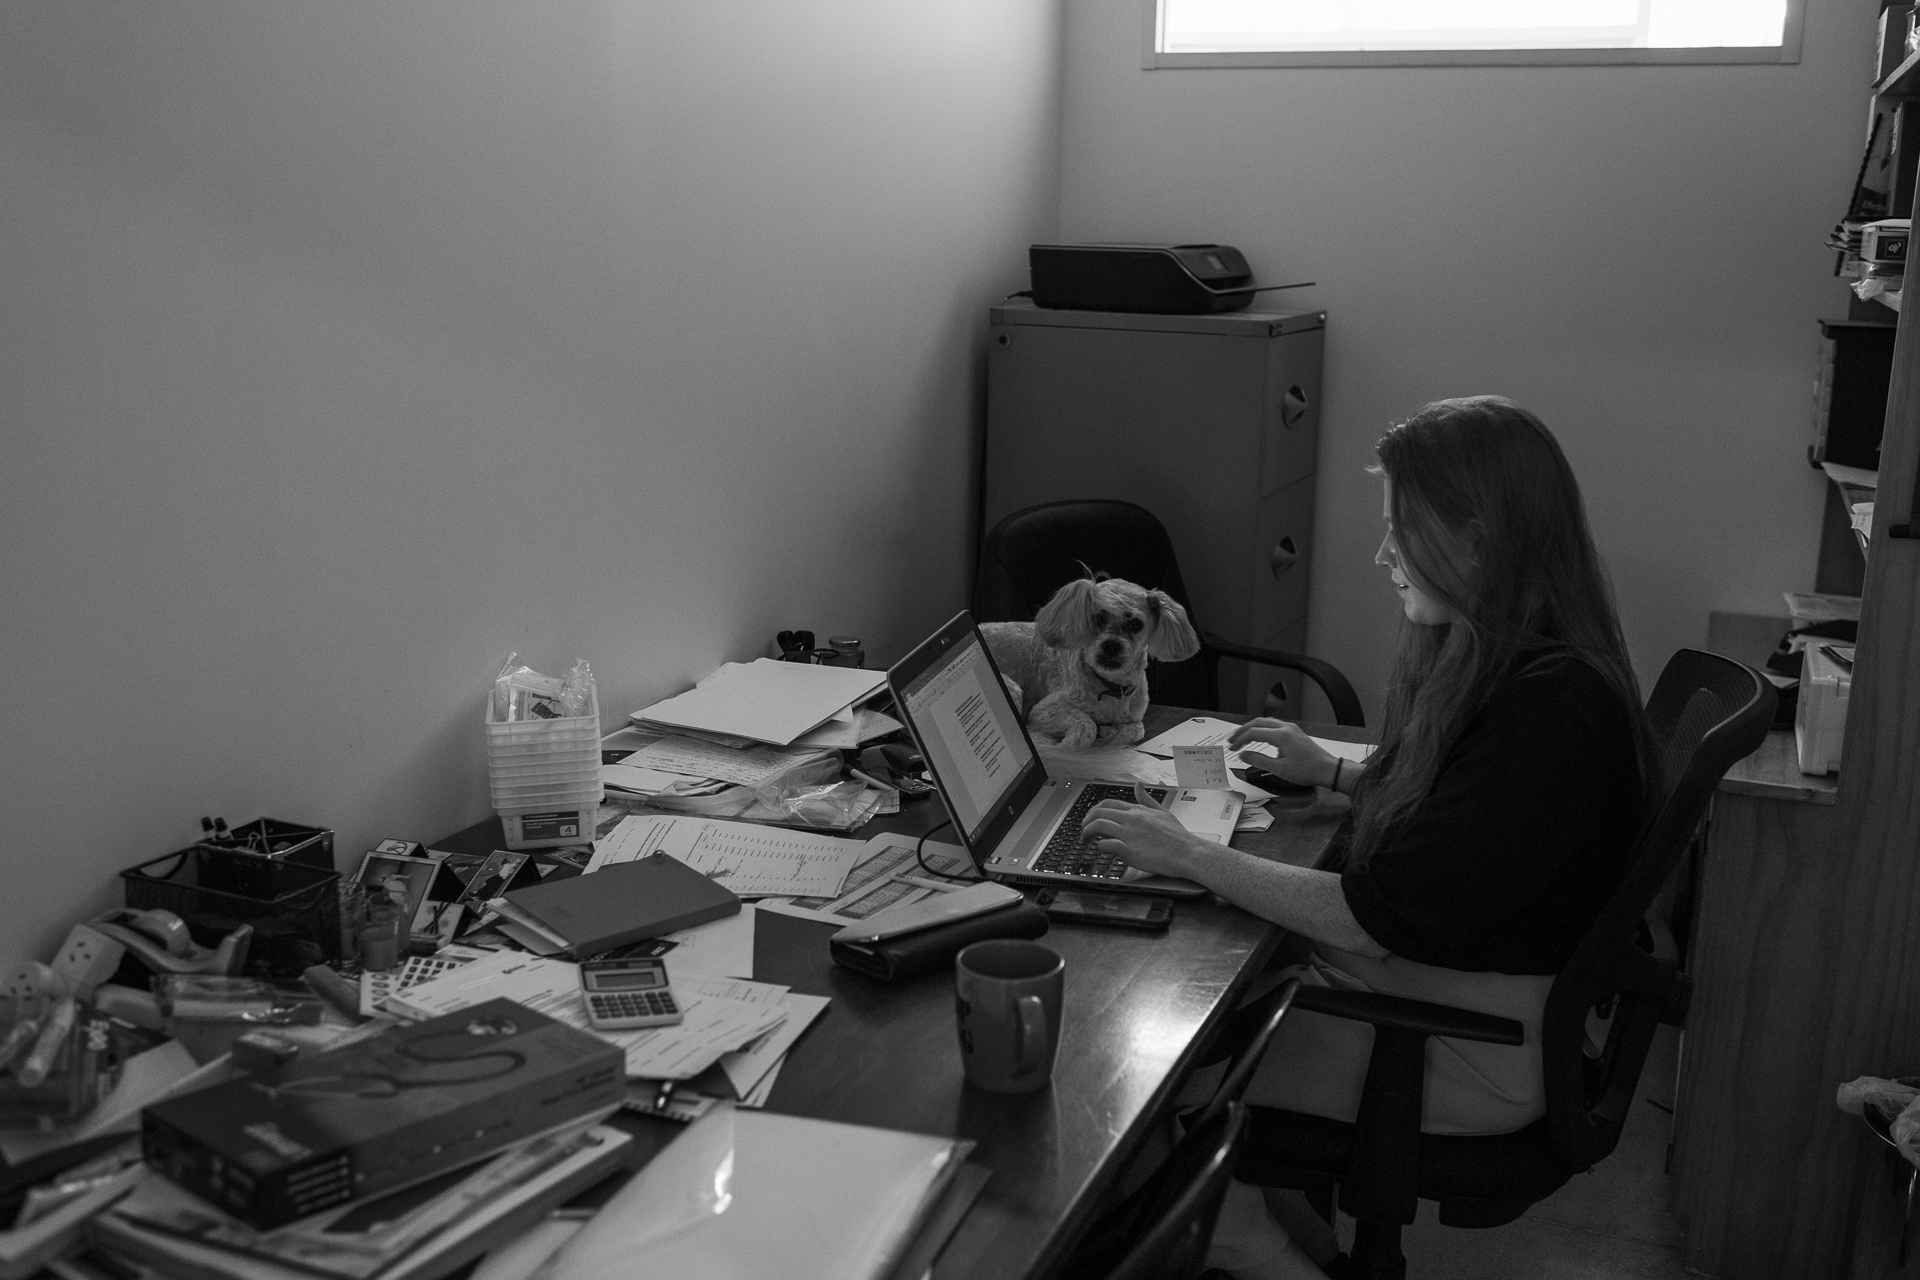 Billy sits with his owner, Practice Manager Bri Smith, who likes working in a dimly lit office.  5 March, 2018.